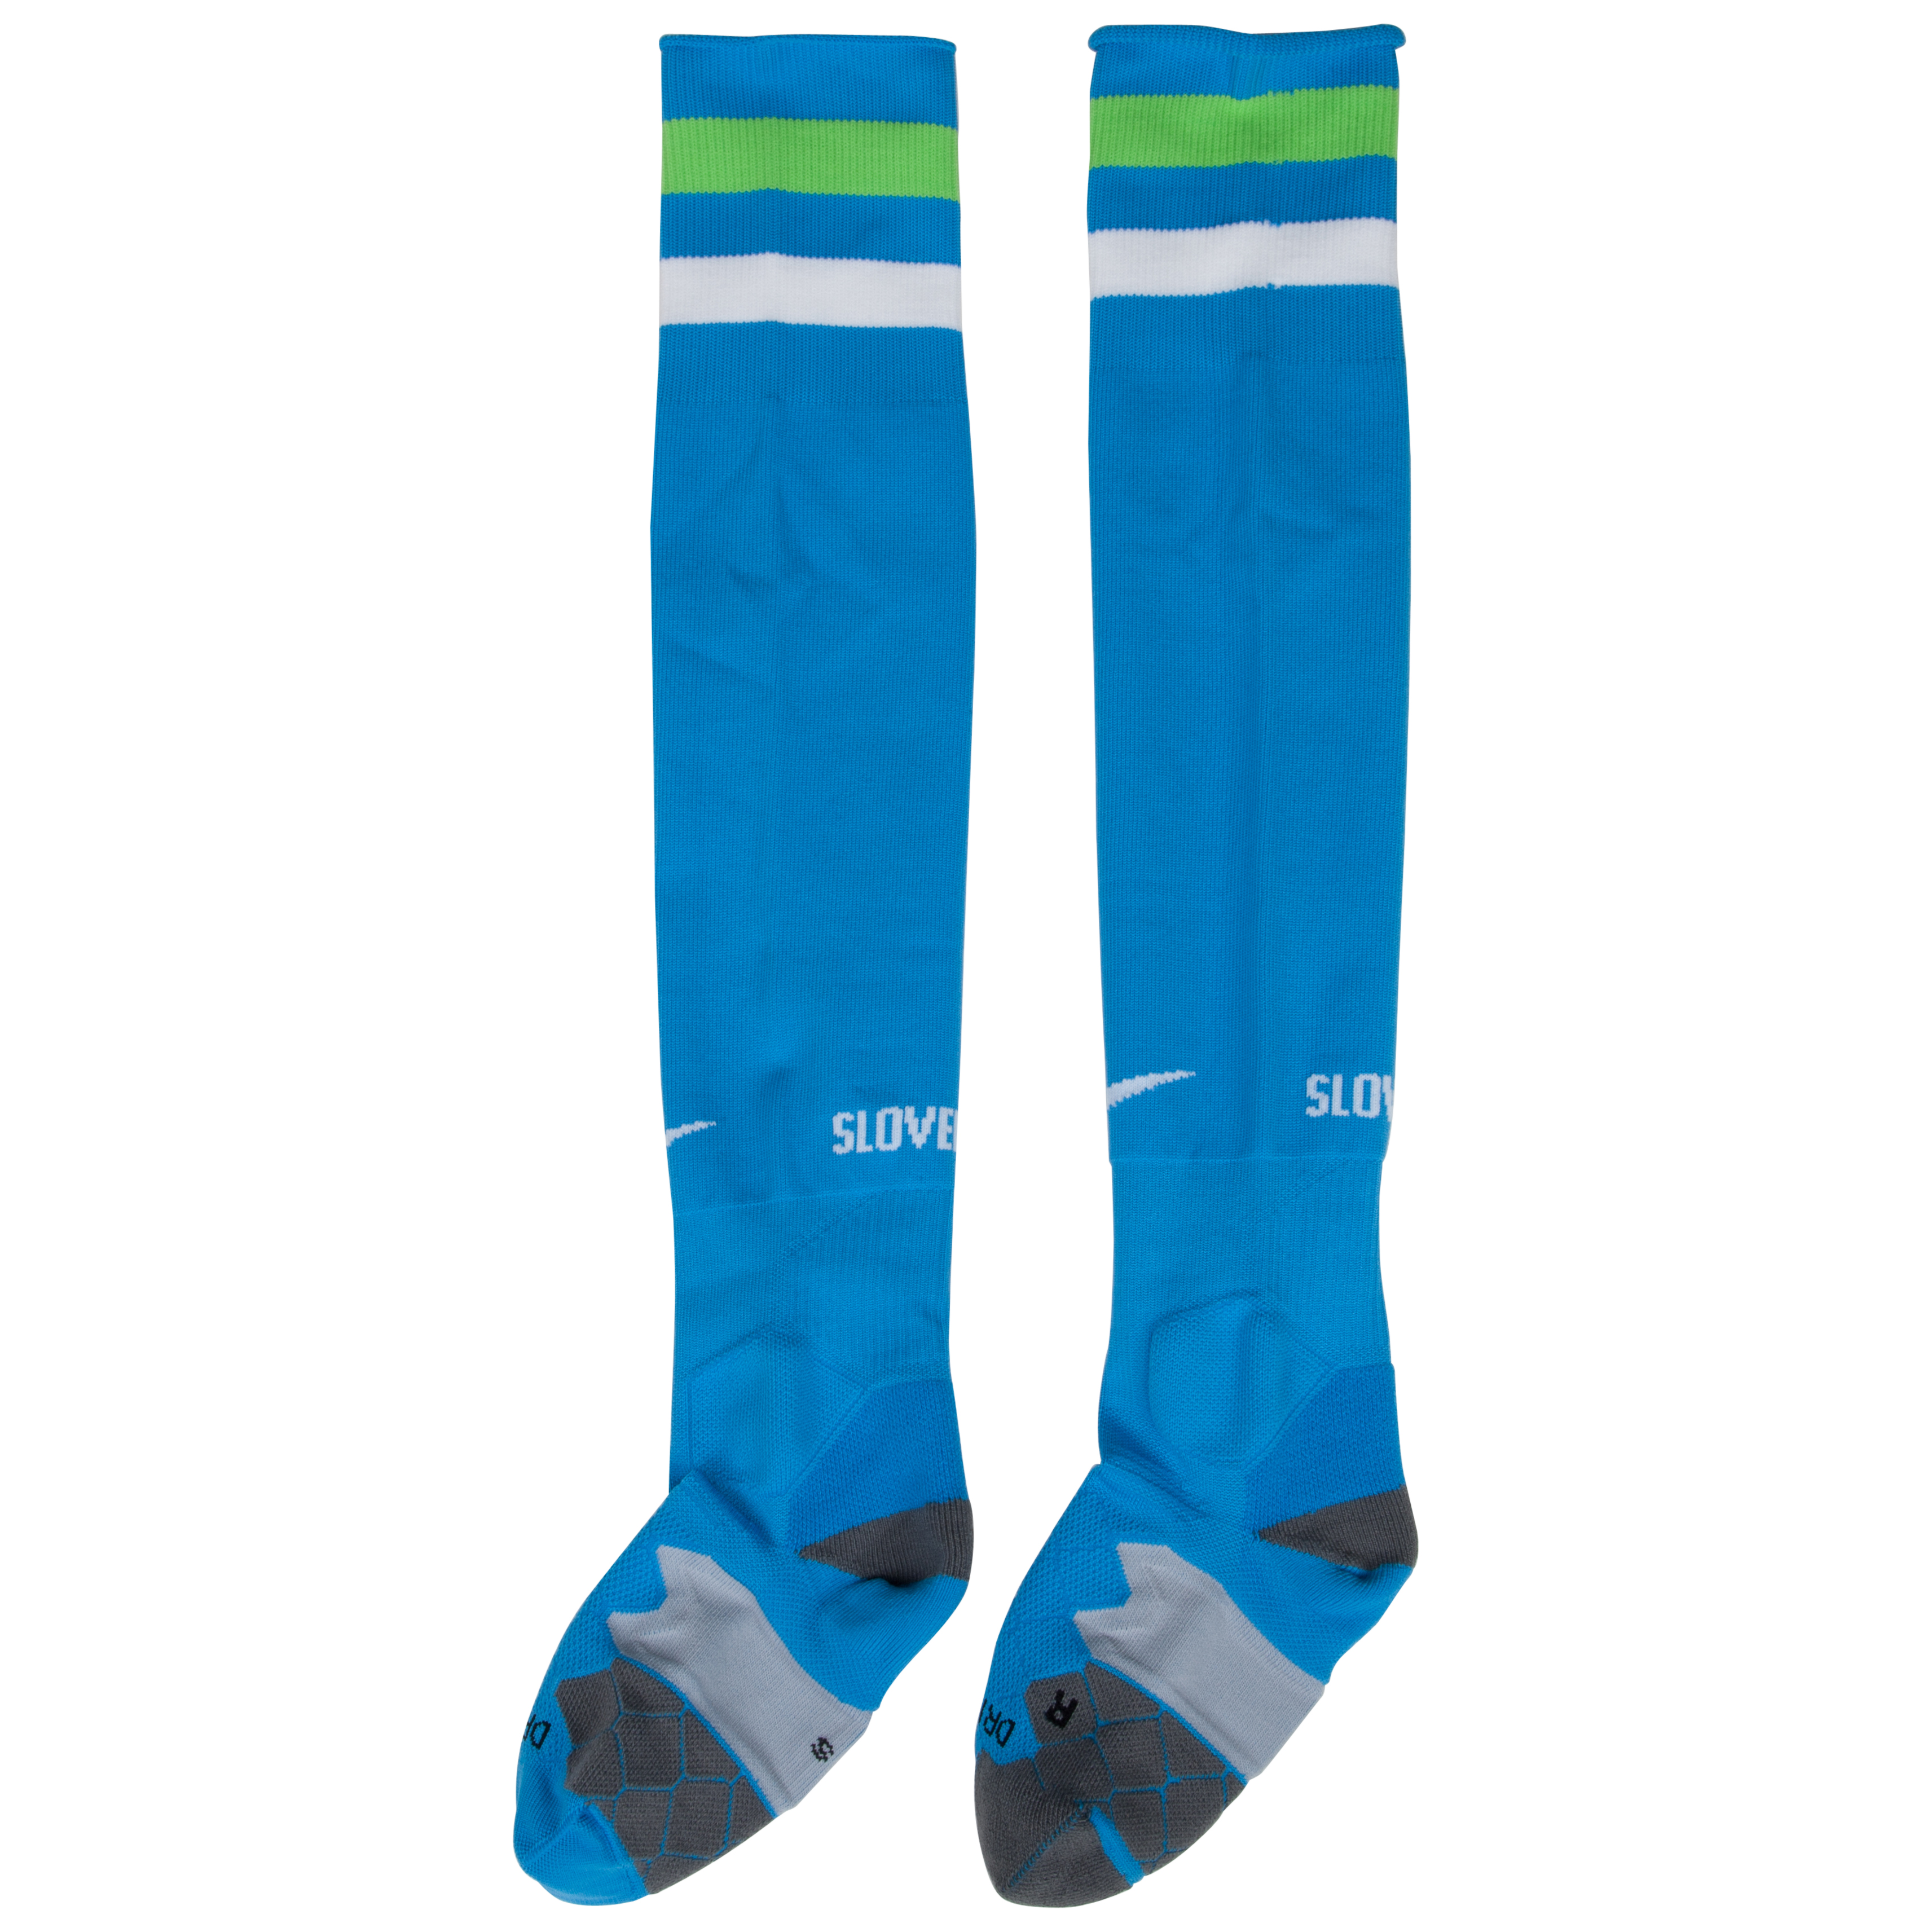 Slovenia Home Socks 2012/13